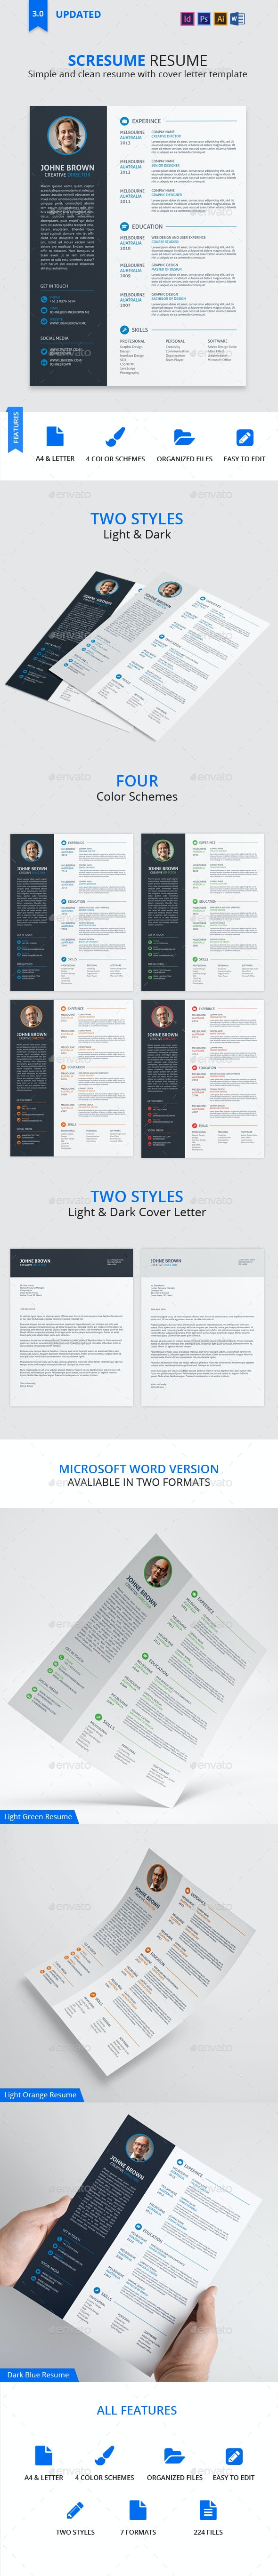 Scresume | Resume CV And Cover Letter Template - Resumes Stationery